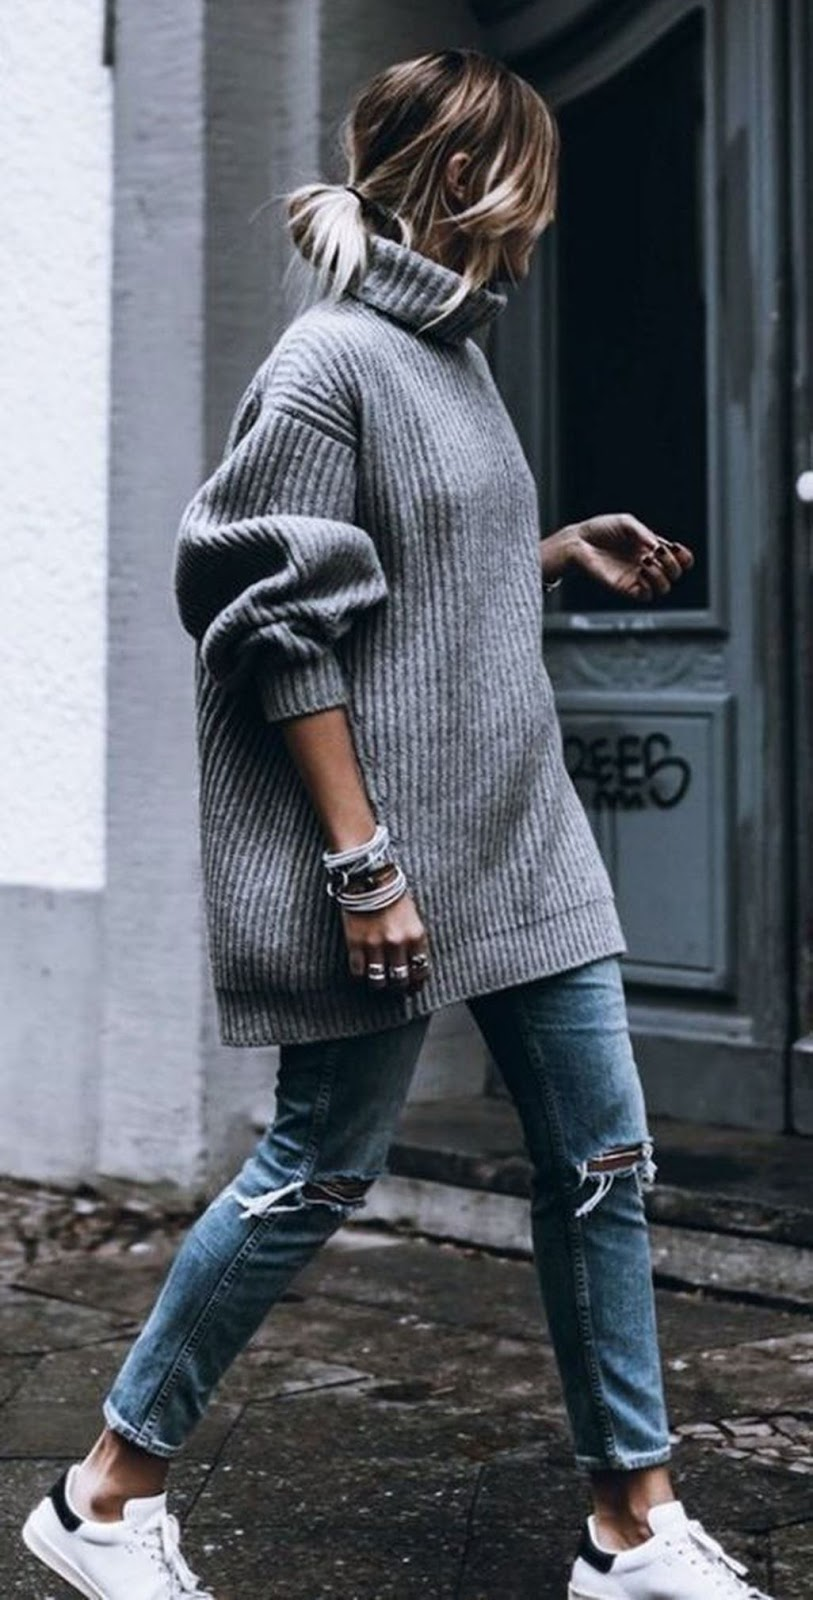 Cute Winter Outfit with Sneakers 2018